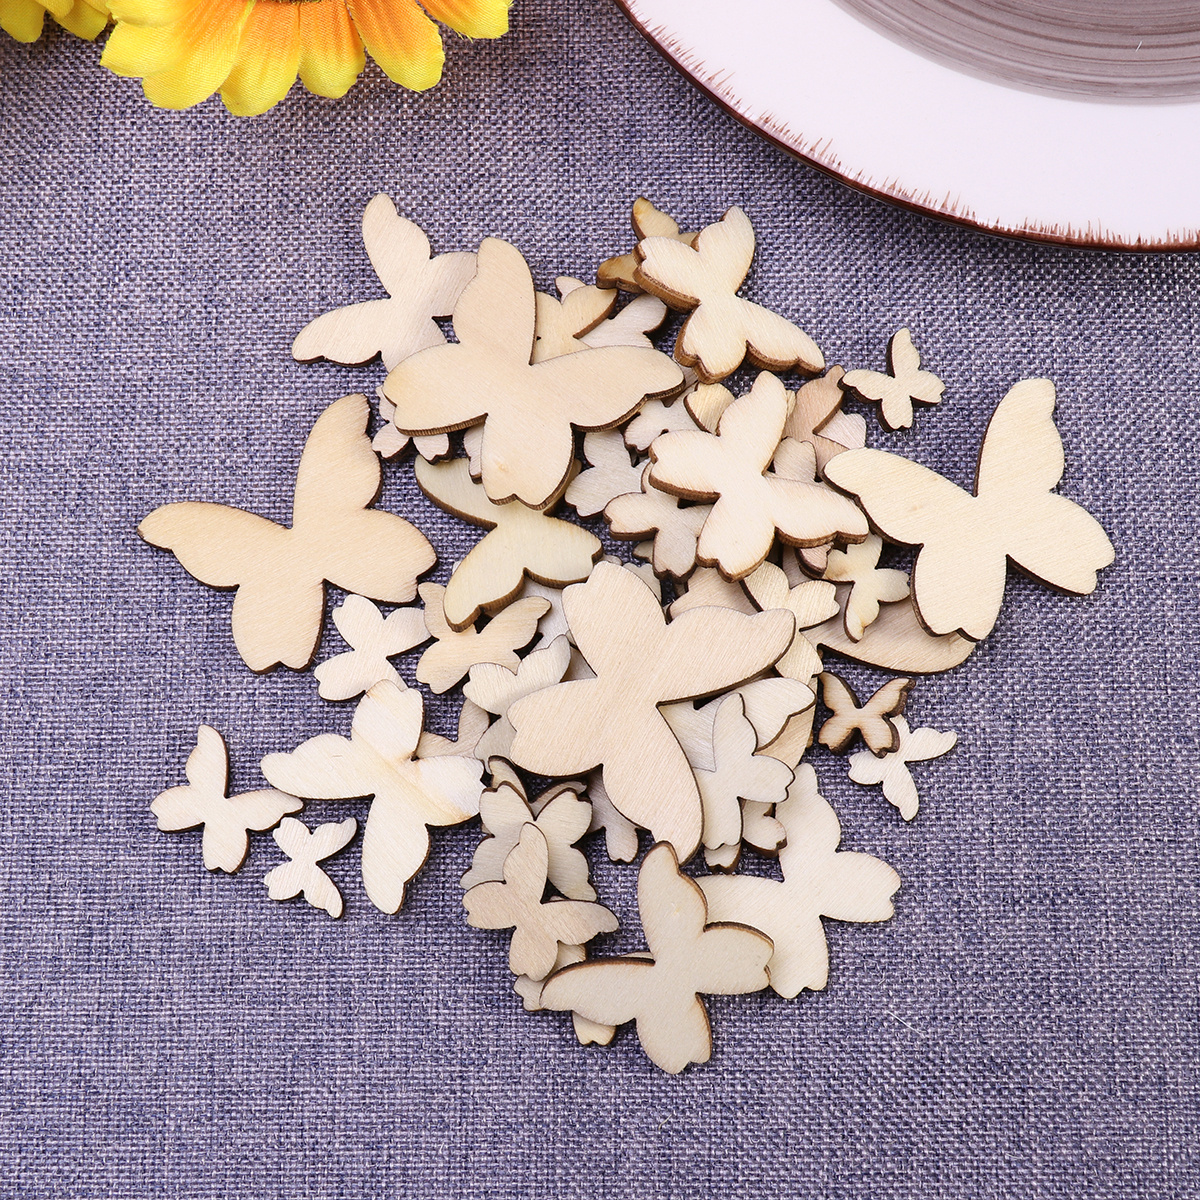 50pcs Mixed Size Wooden Butterflies Craft Embellishments MDF Wooden Cutout  Scrapbooking for DIY Art Wedding Decoration 0a796a0863f8